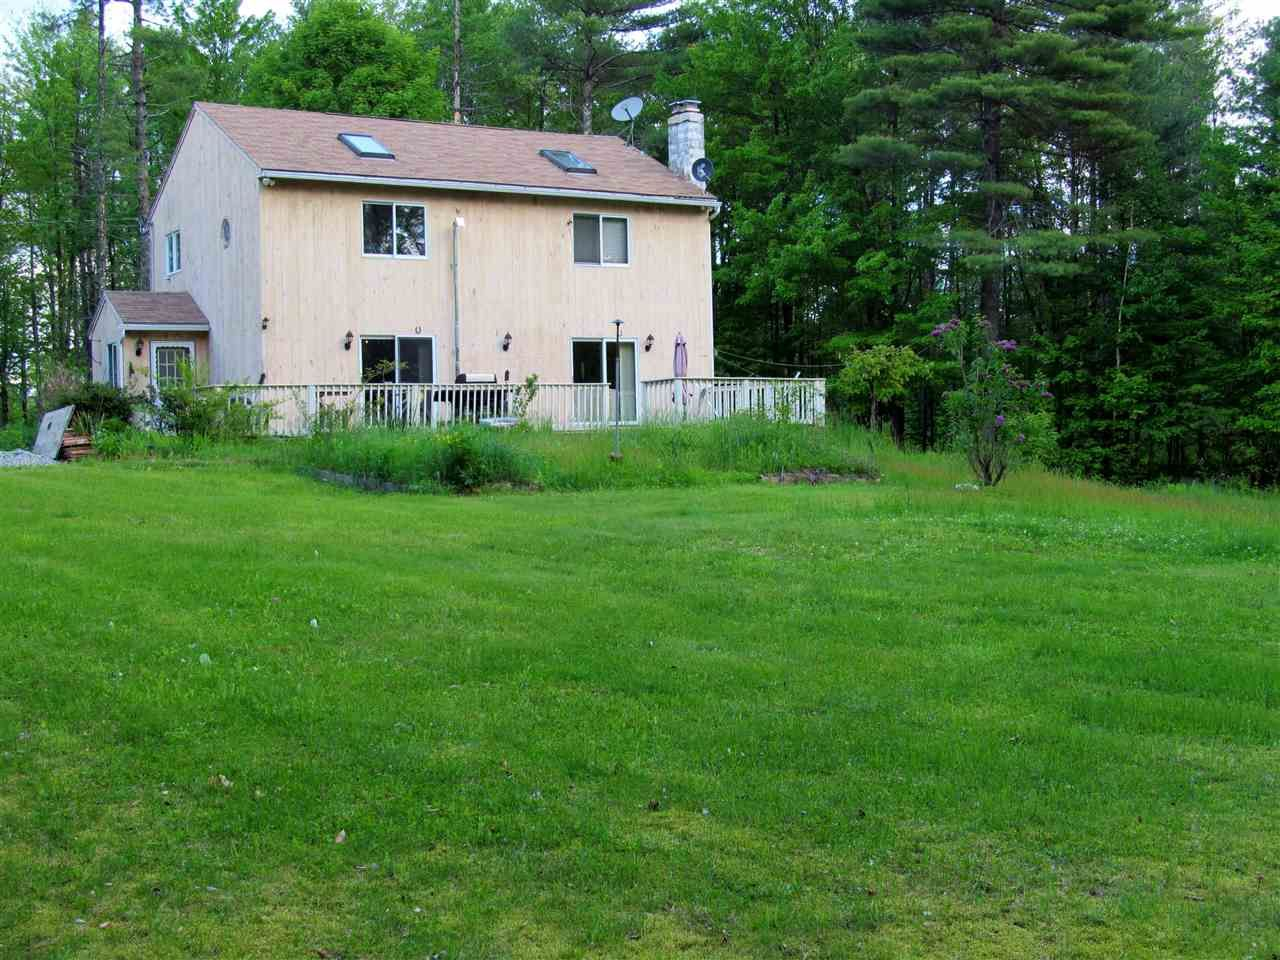 373 bunker hill rd hill nh 03243 recently sold trulia